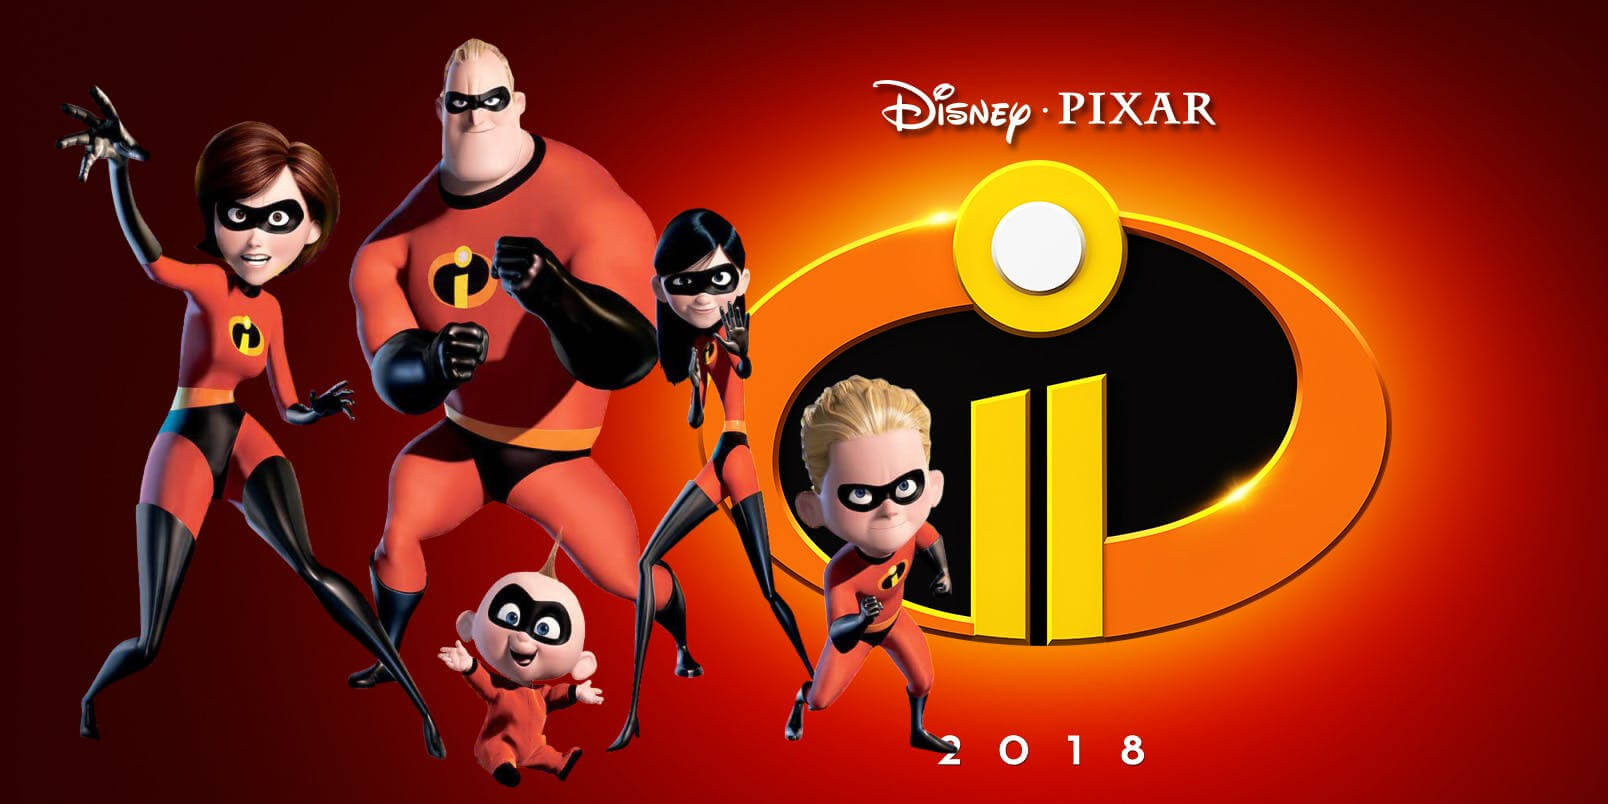 incredibles 2 is in theaters now buy tickets get a free poster